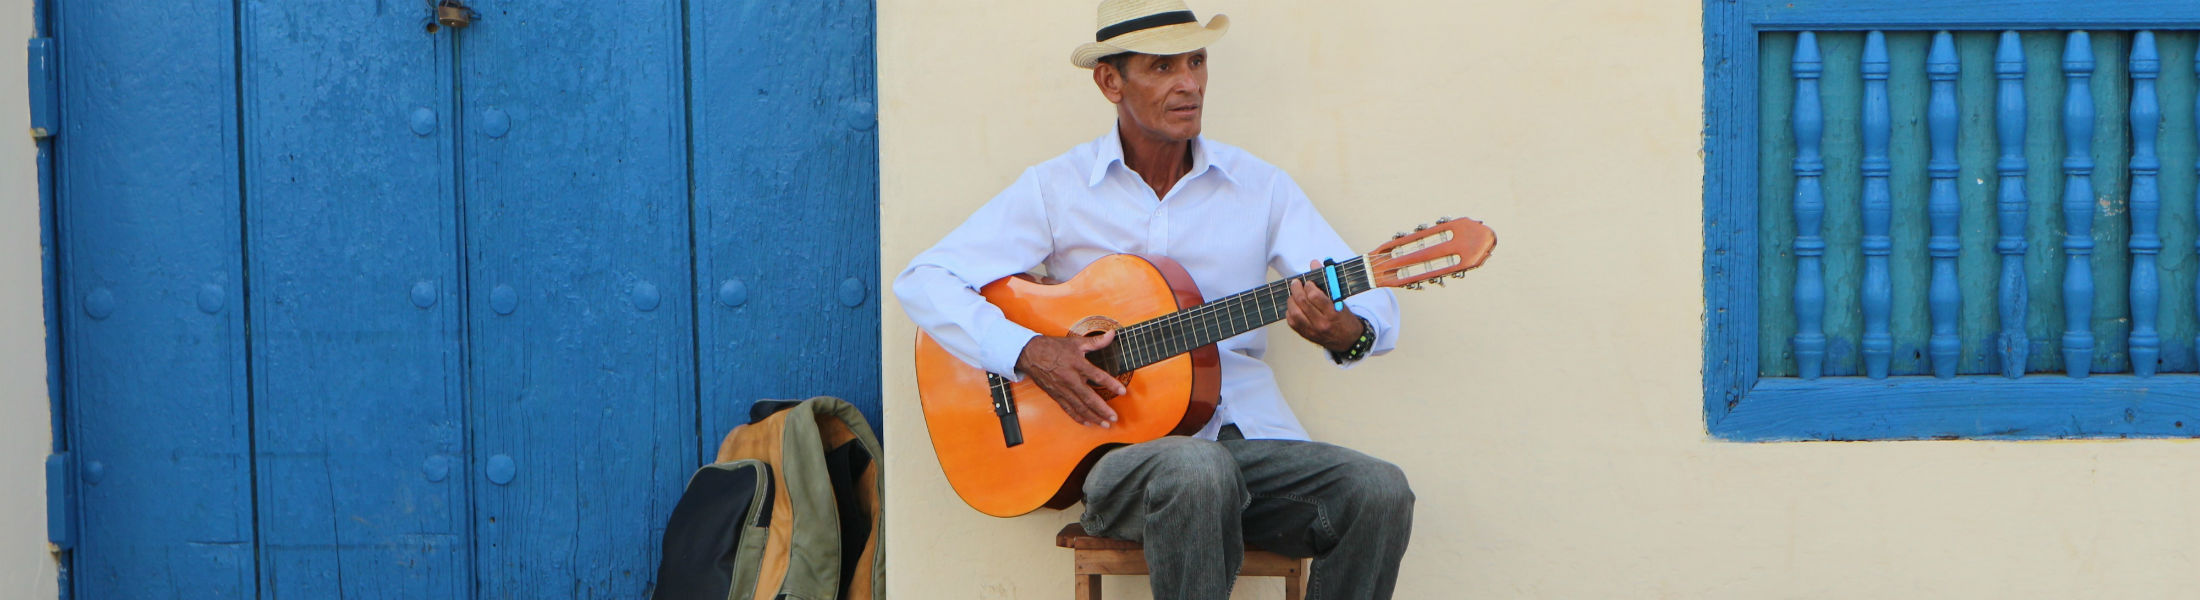 Cuban man wearing traditional panama straw hat playing an acoustic guitar_